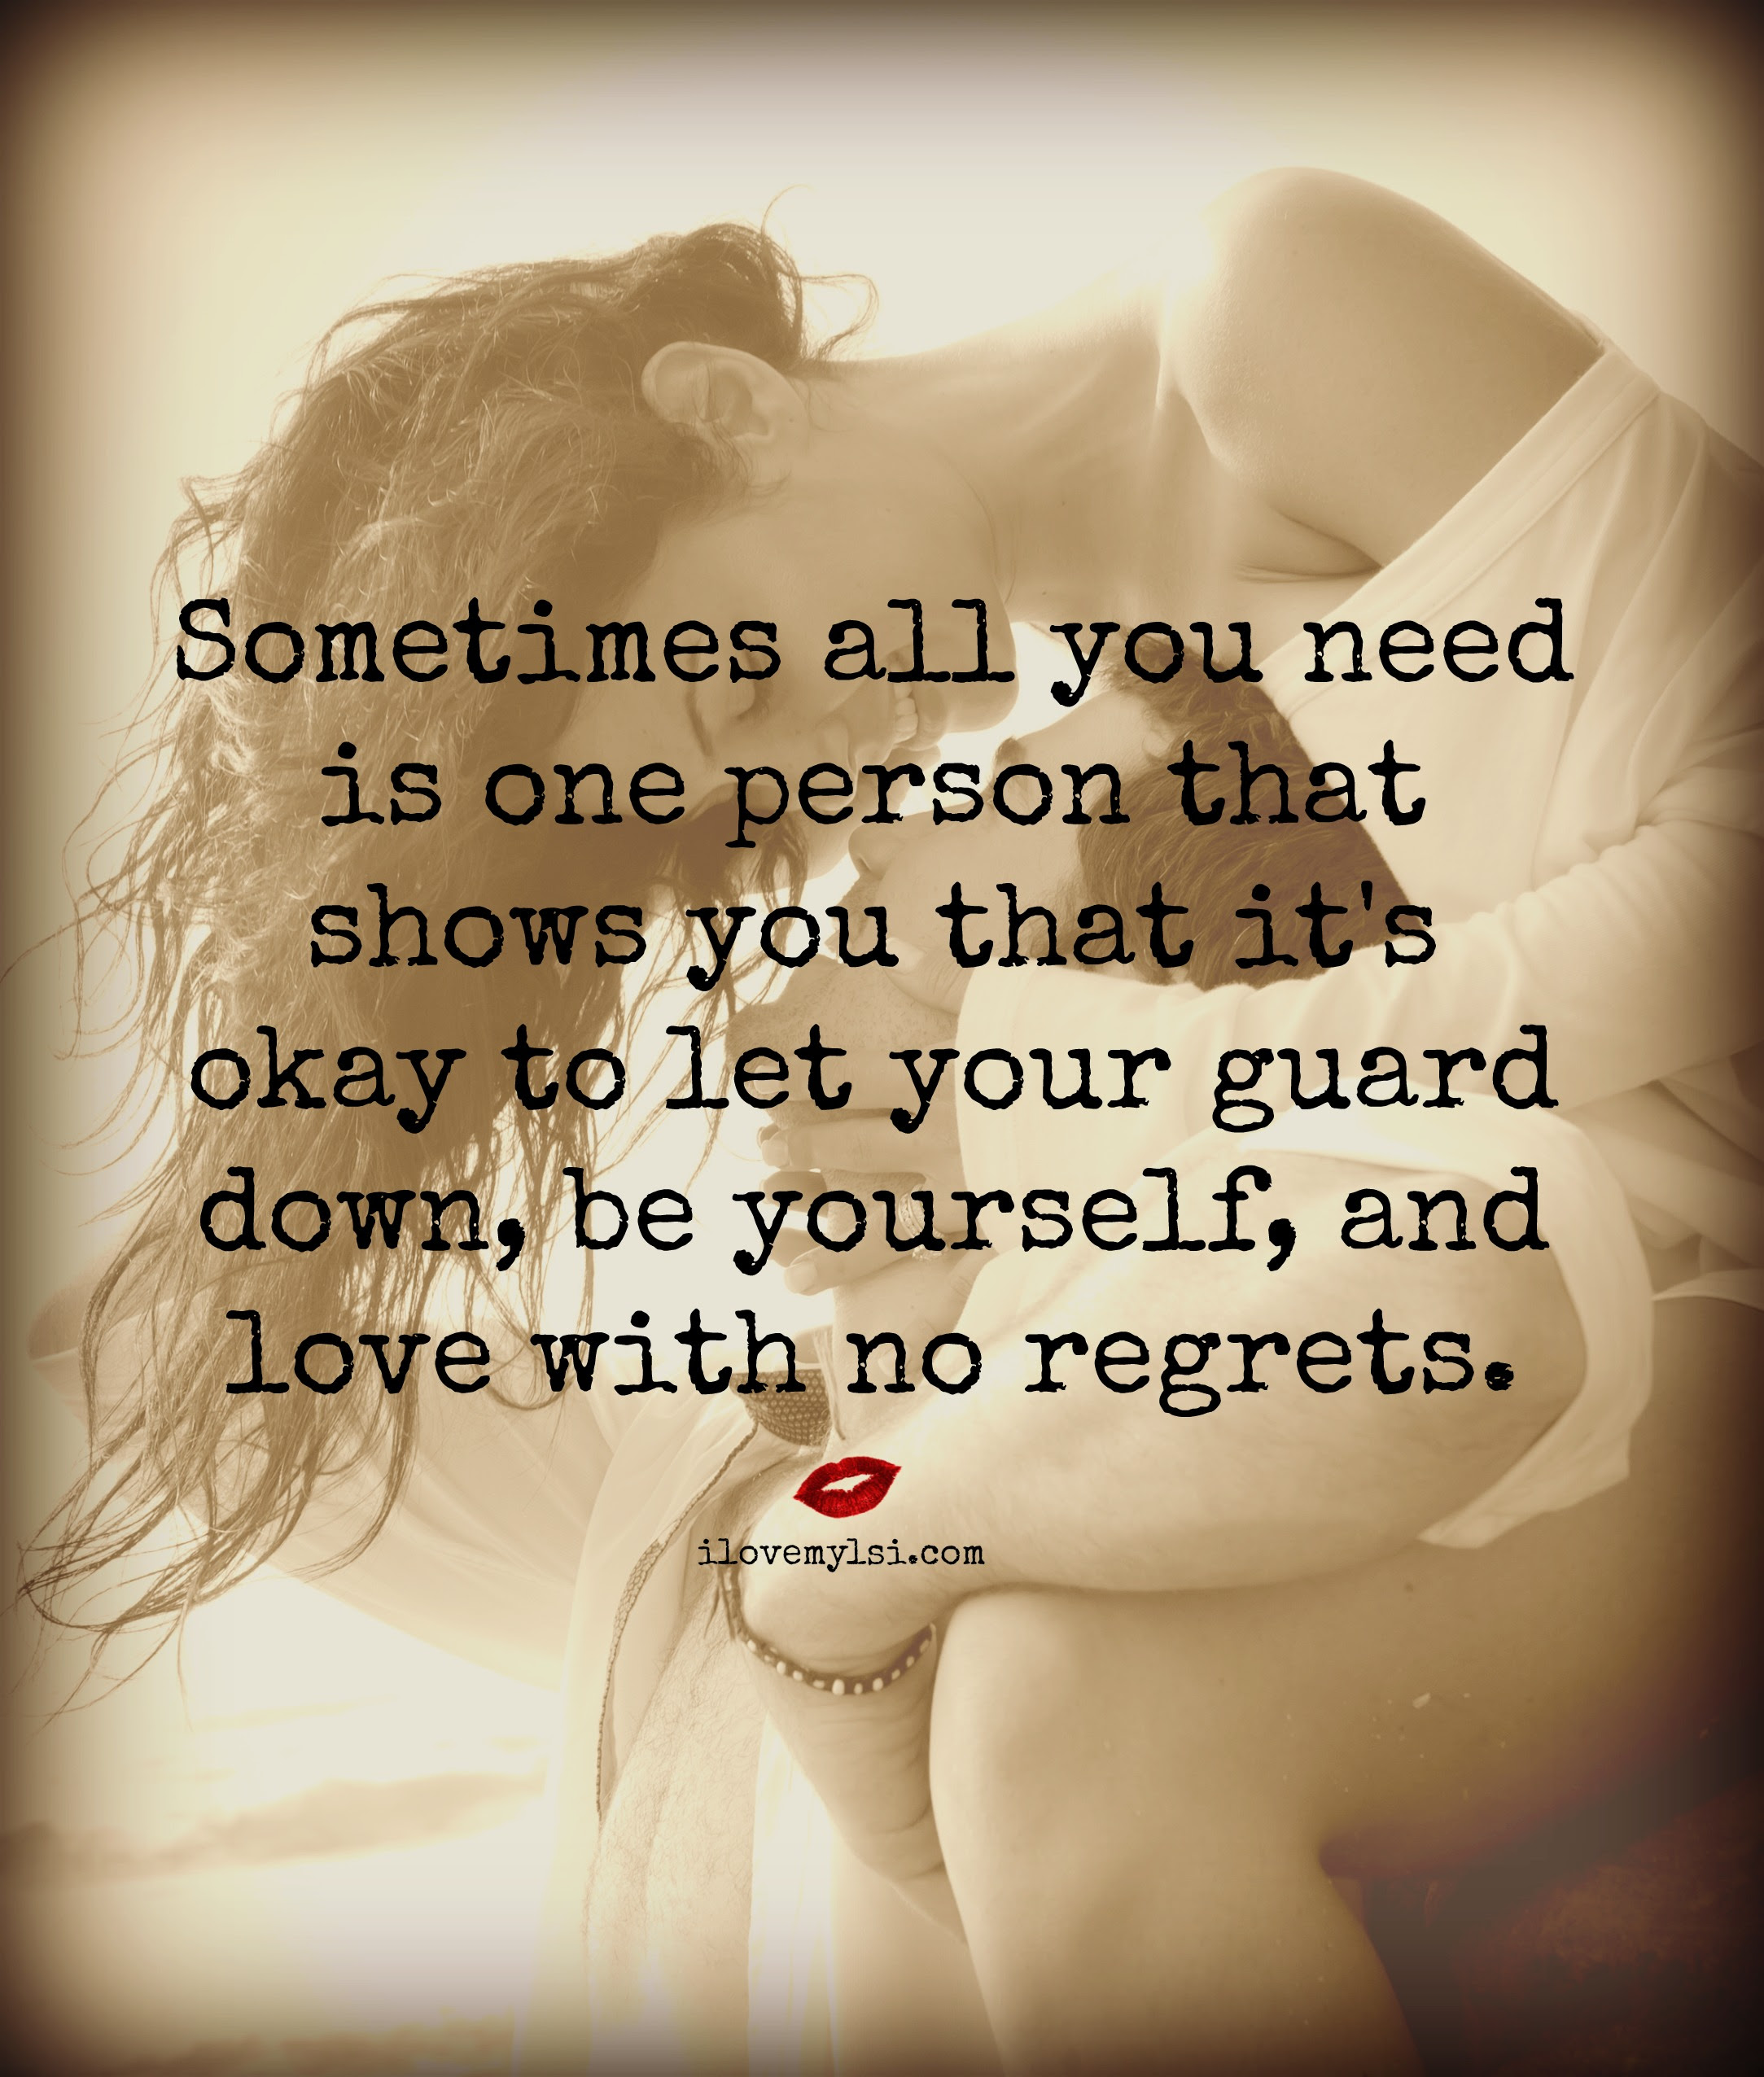 Let Your Guard Down Be Yourself And Love With No Regrets